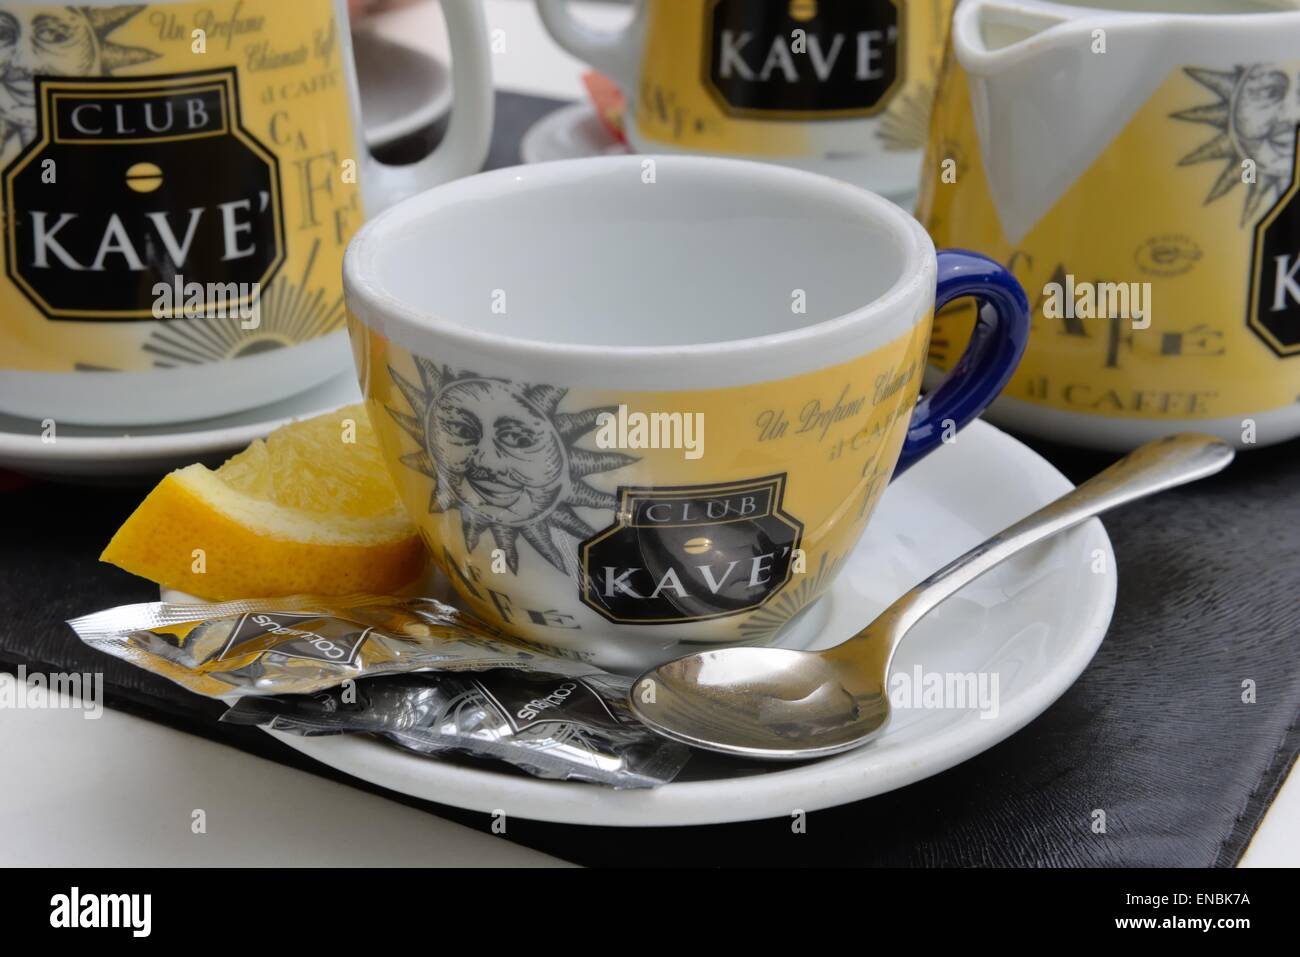 Close up of a Club Kave coffee / tea cup with slice of Lemon - Stock Image